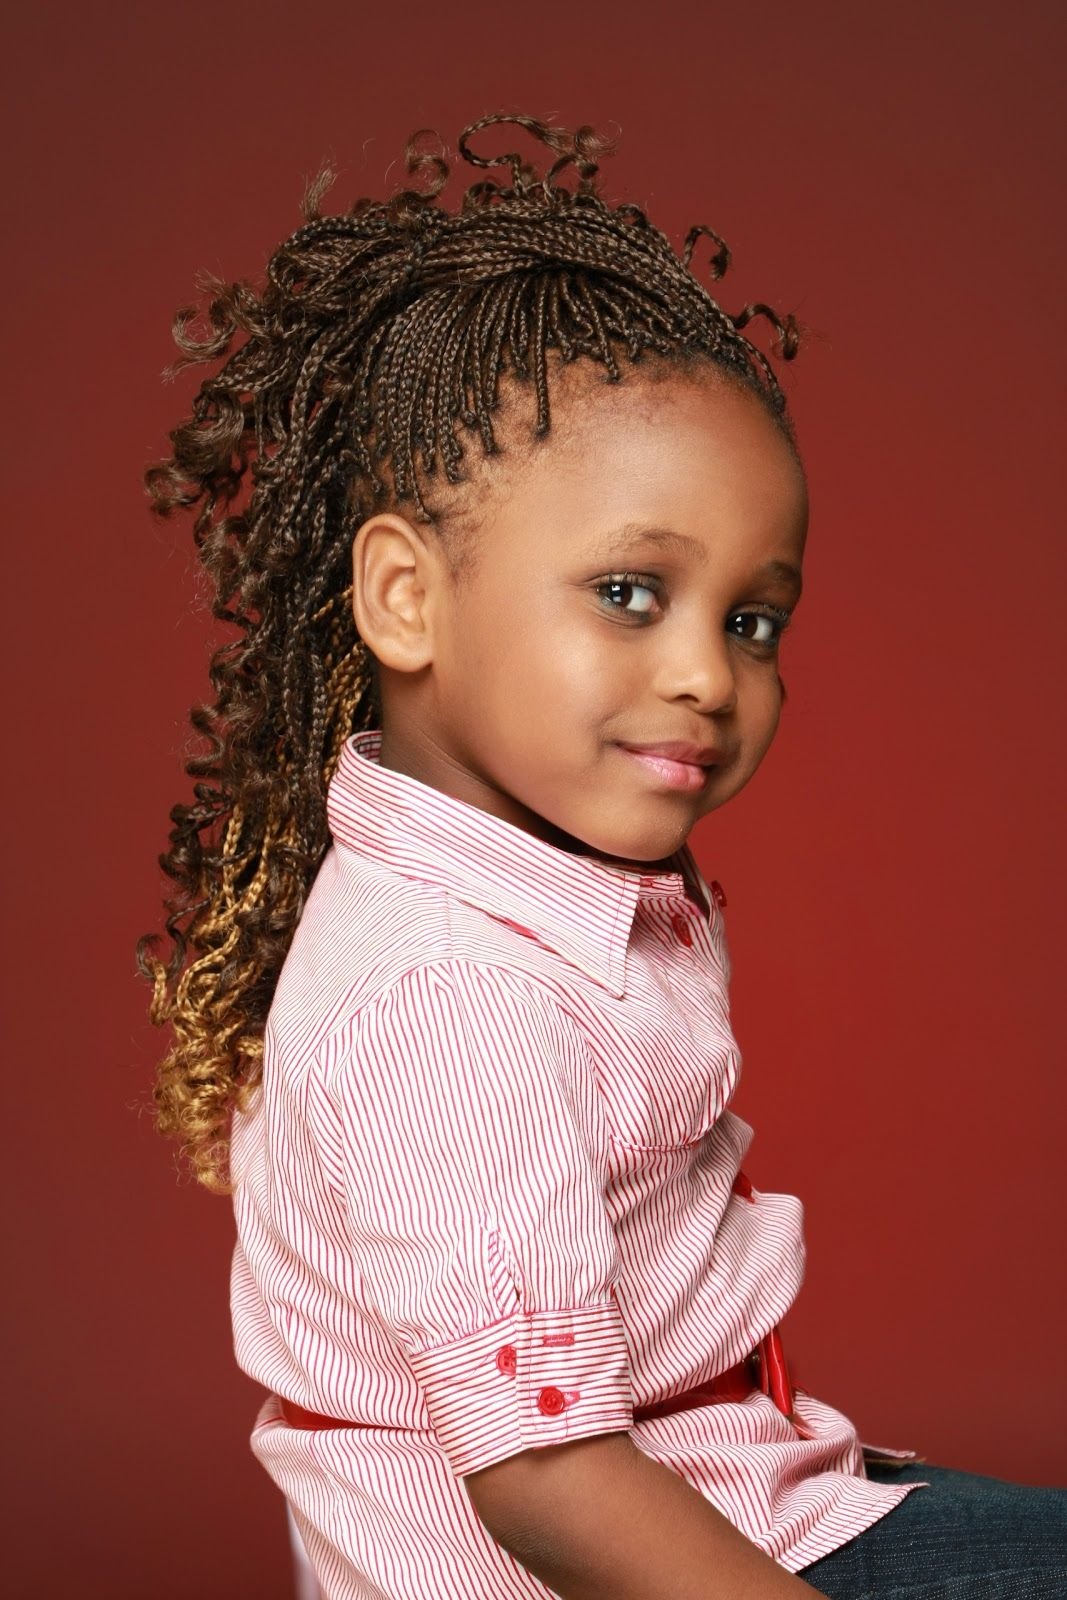 Kid hairstyles with beads kid hairstyles pinterest beautiful - A Few Braided Hairstyles For Black Women Include Cornrows Two Strand Twists Free Kid